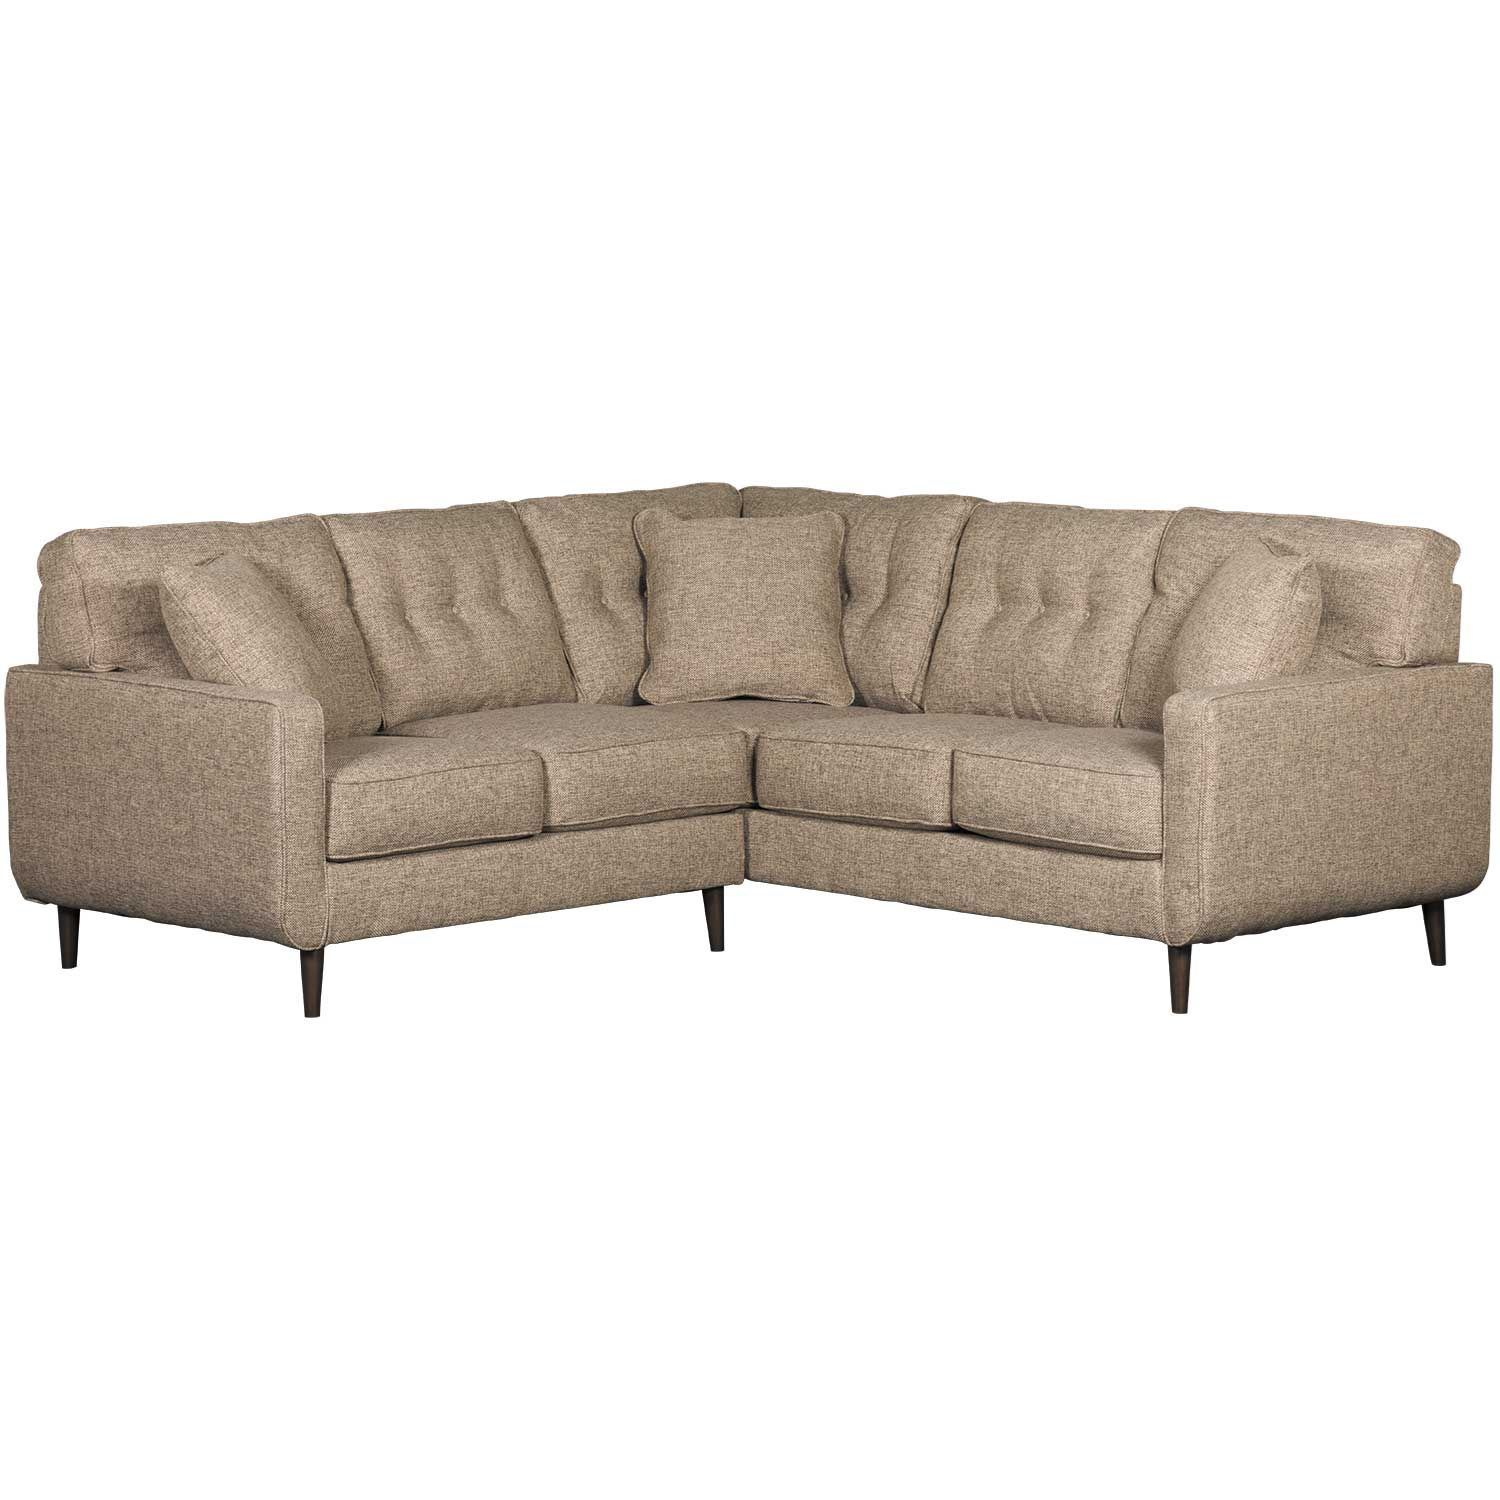 Chento Jute 2PC Sectional w/ RAF Sofa